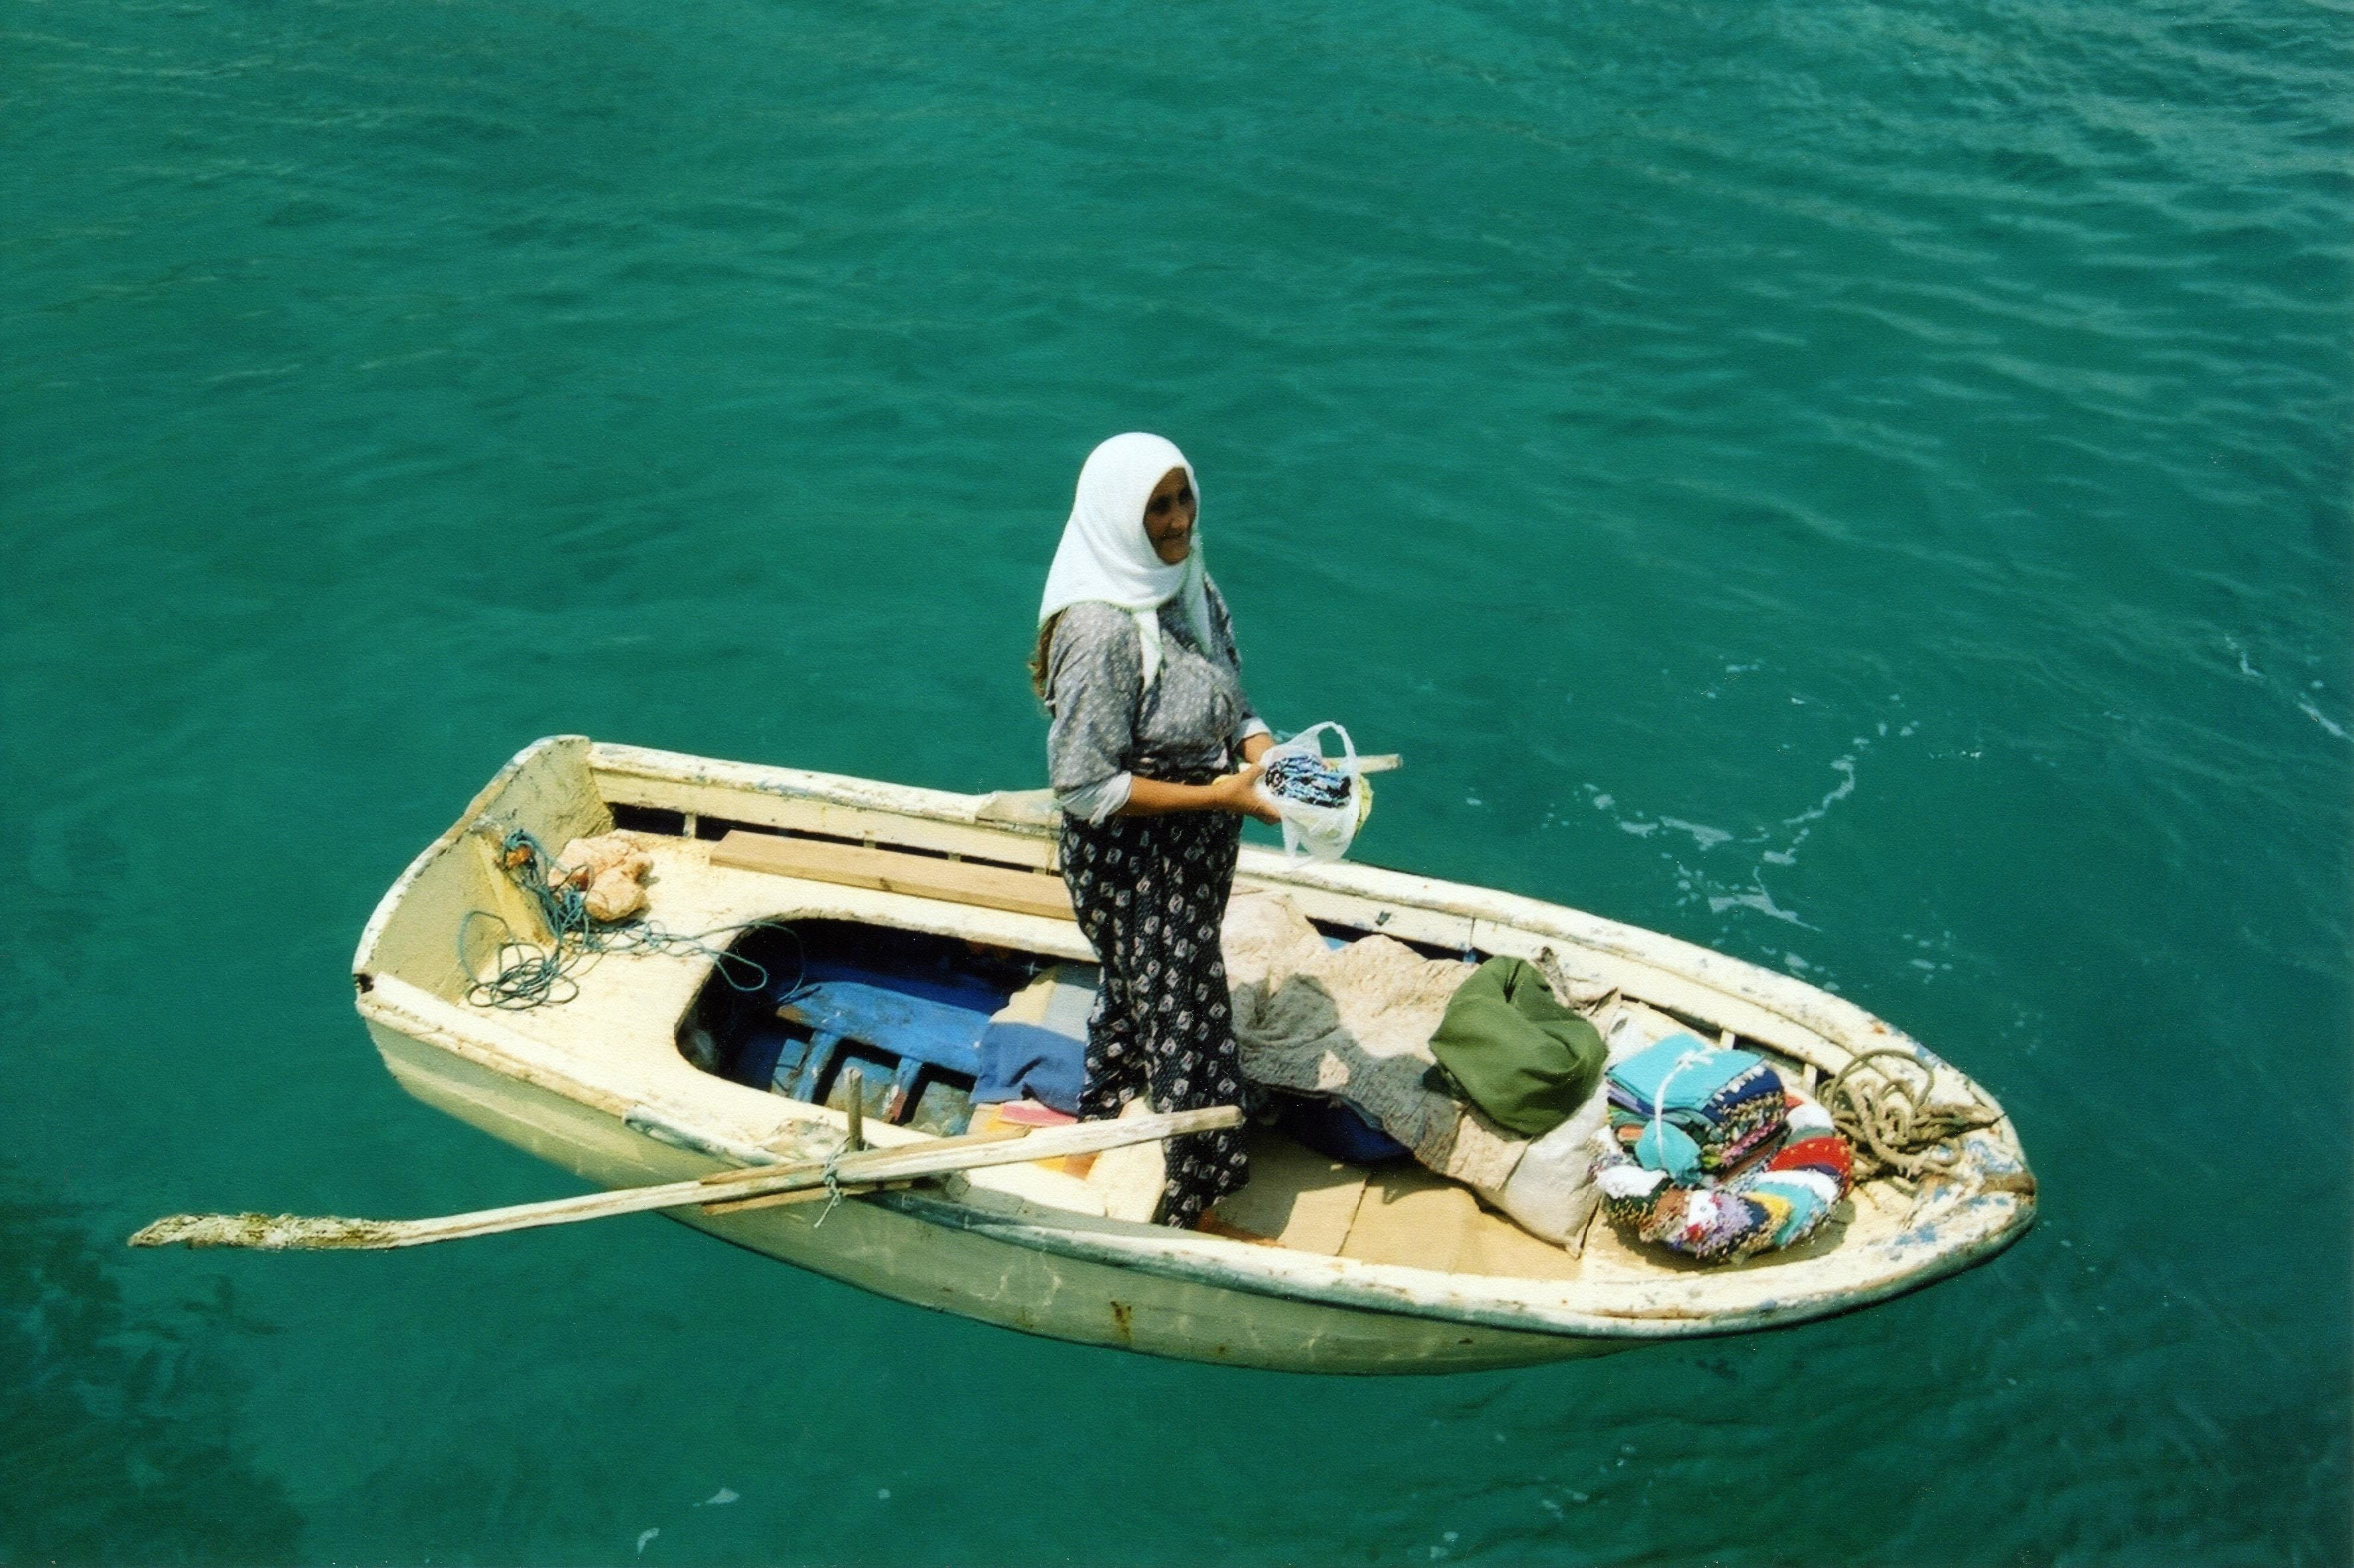 a woman fishes from a rowing boat in Turkey